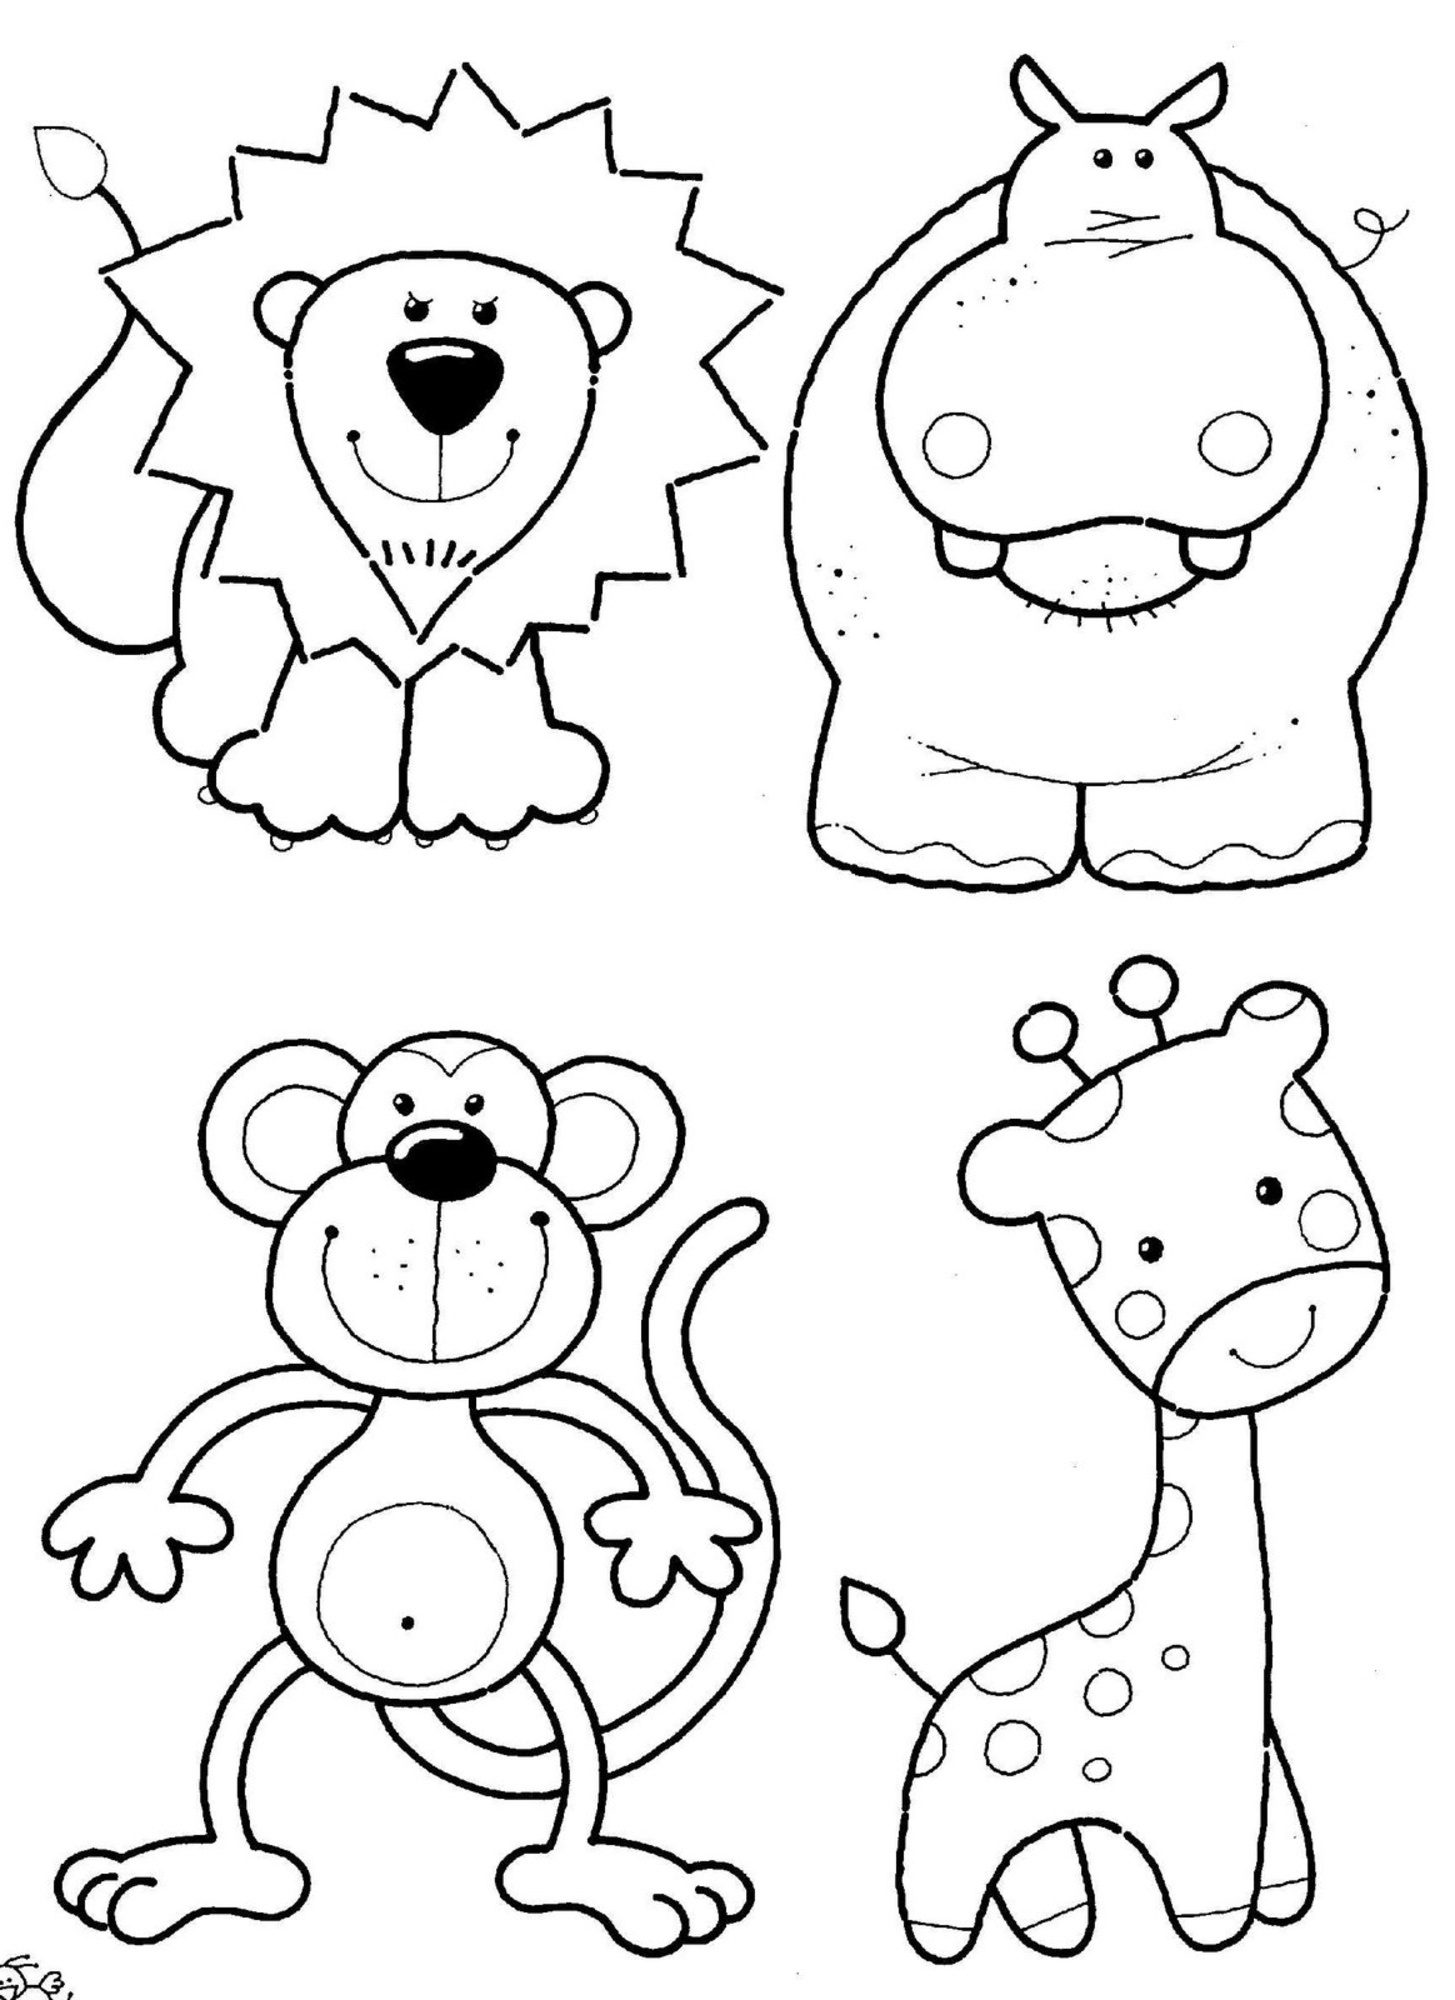 zoo coloring page put me in the zoo coloring page coloring home page coloring zoo